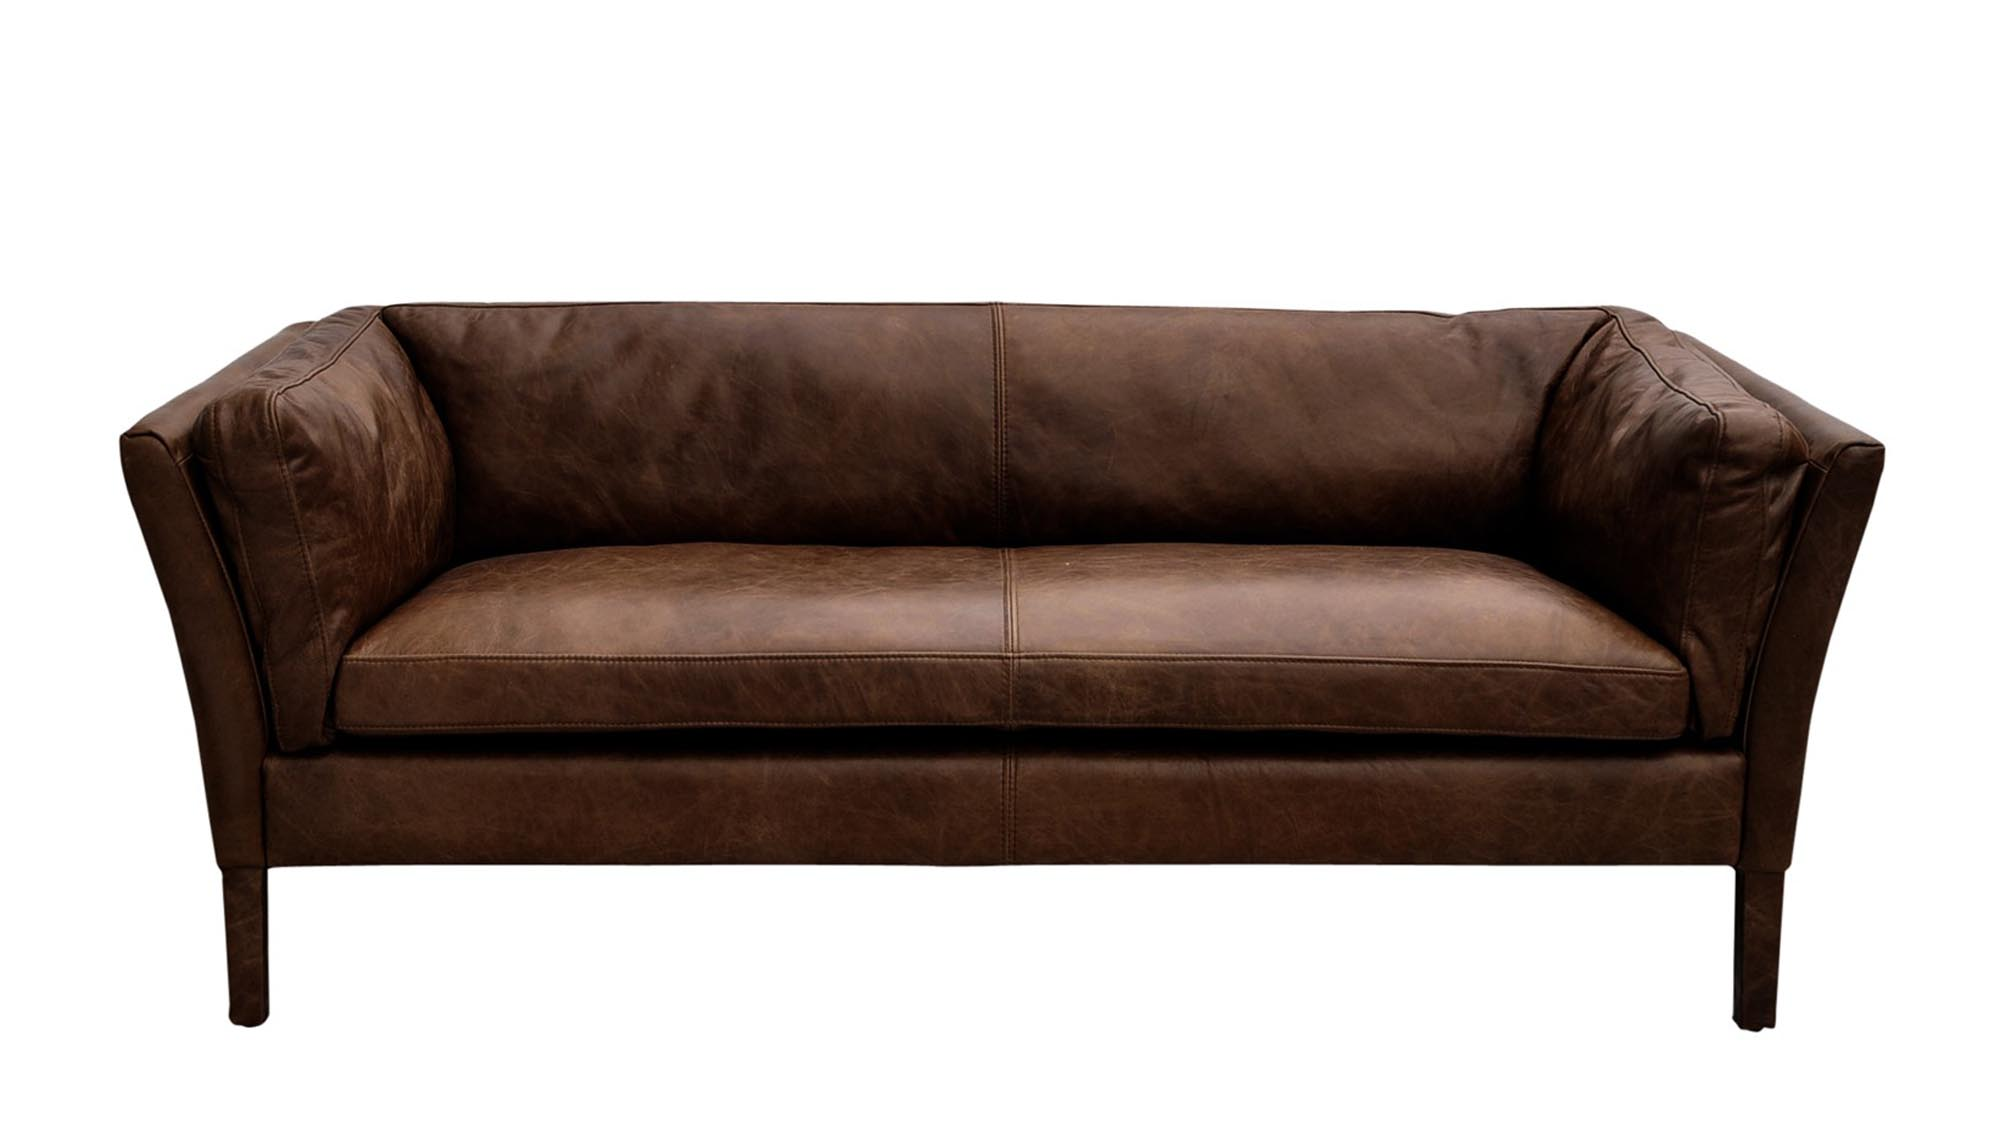 Best sofa 2018 find the perfect sofa for your living room for Cheap modern sofas uk